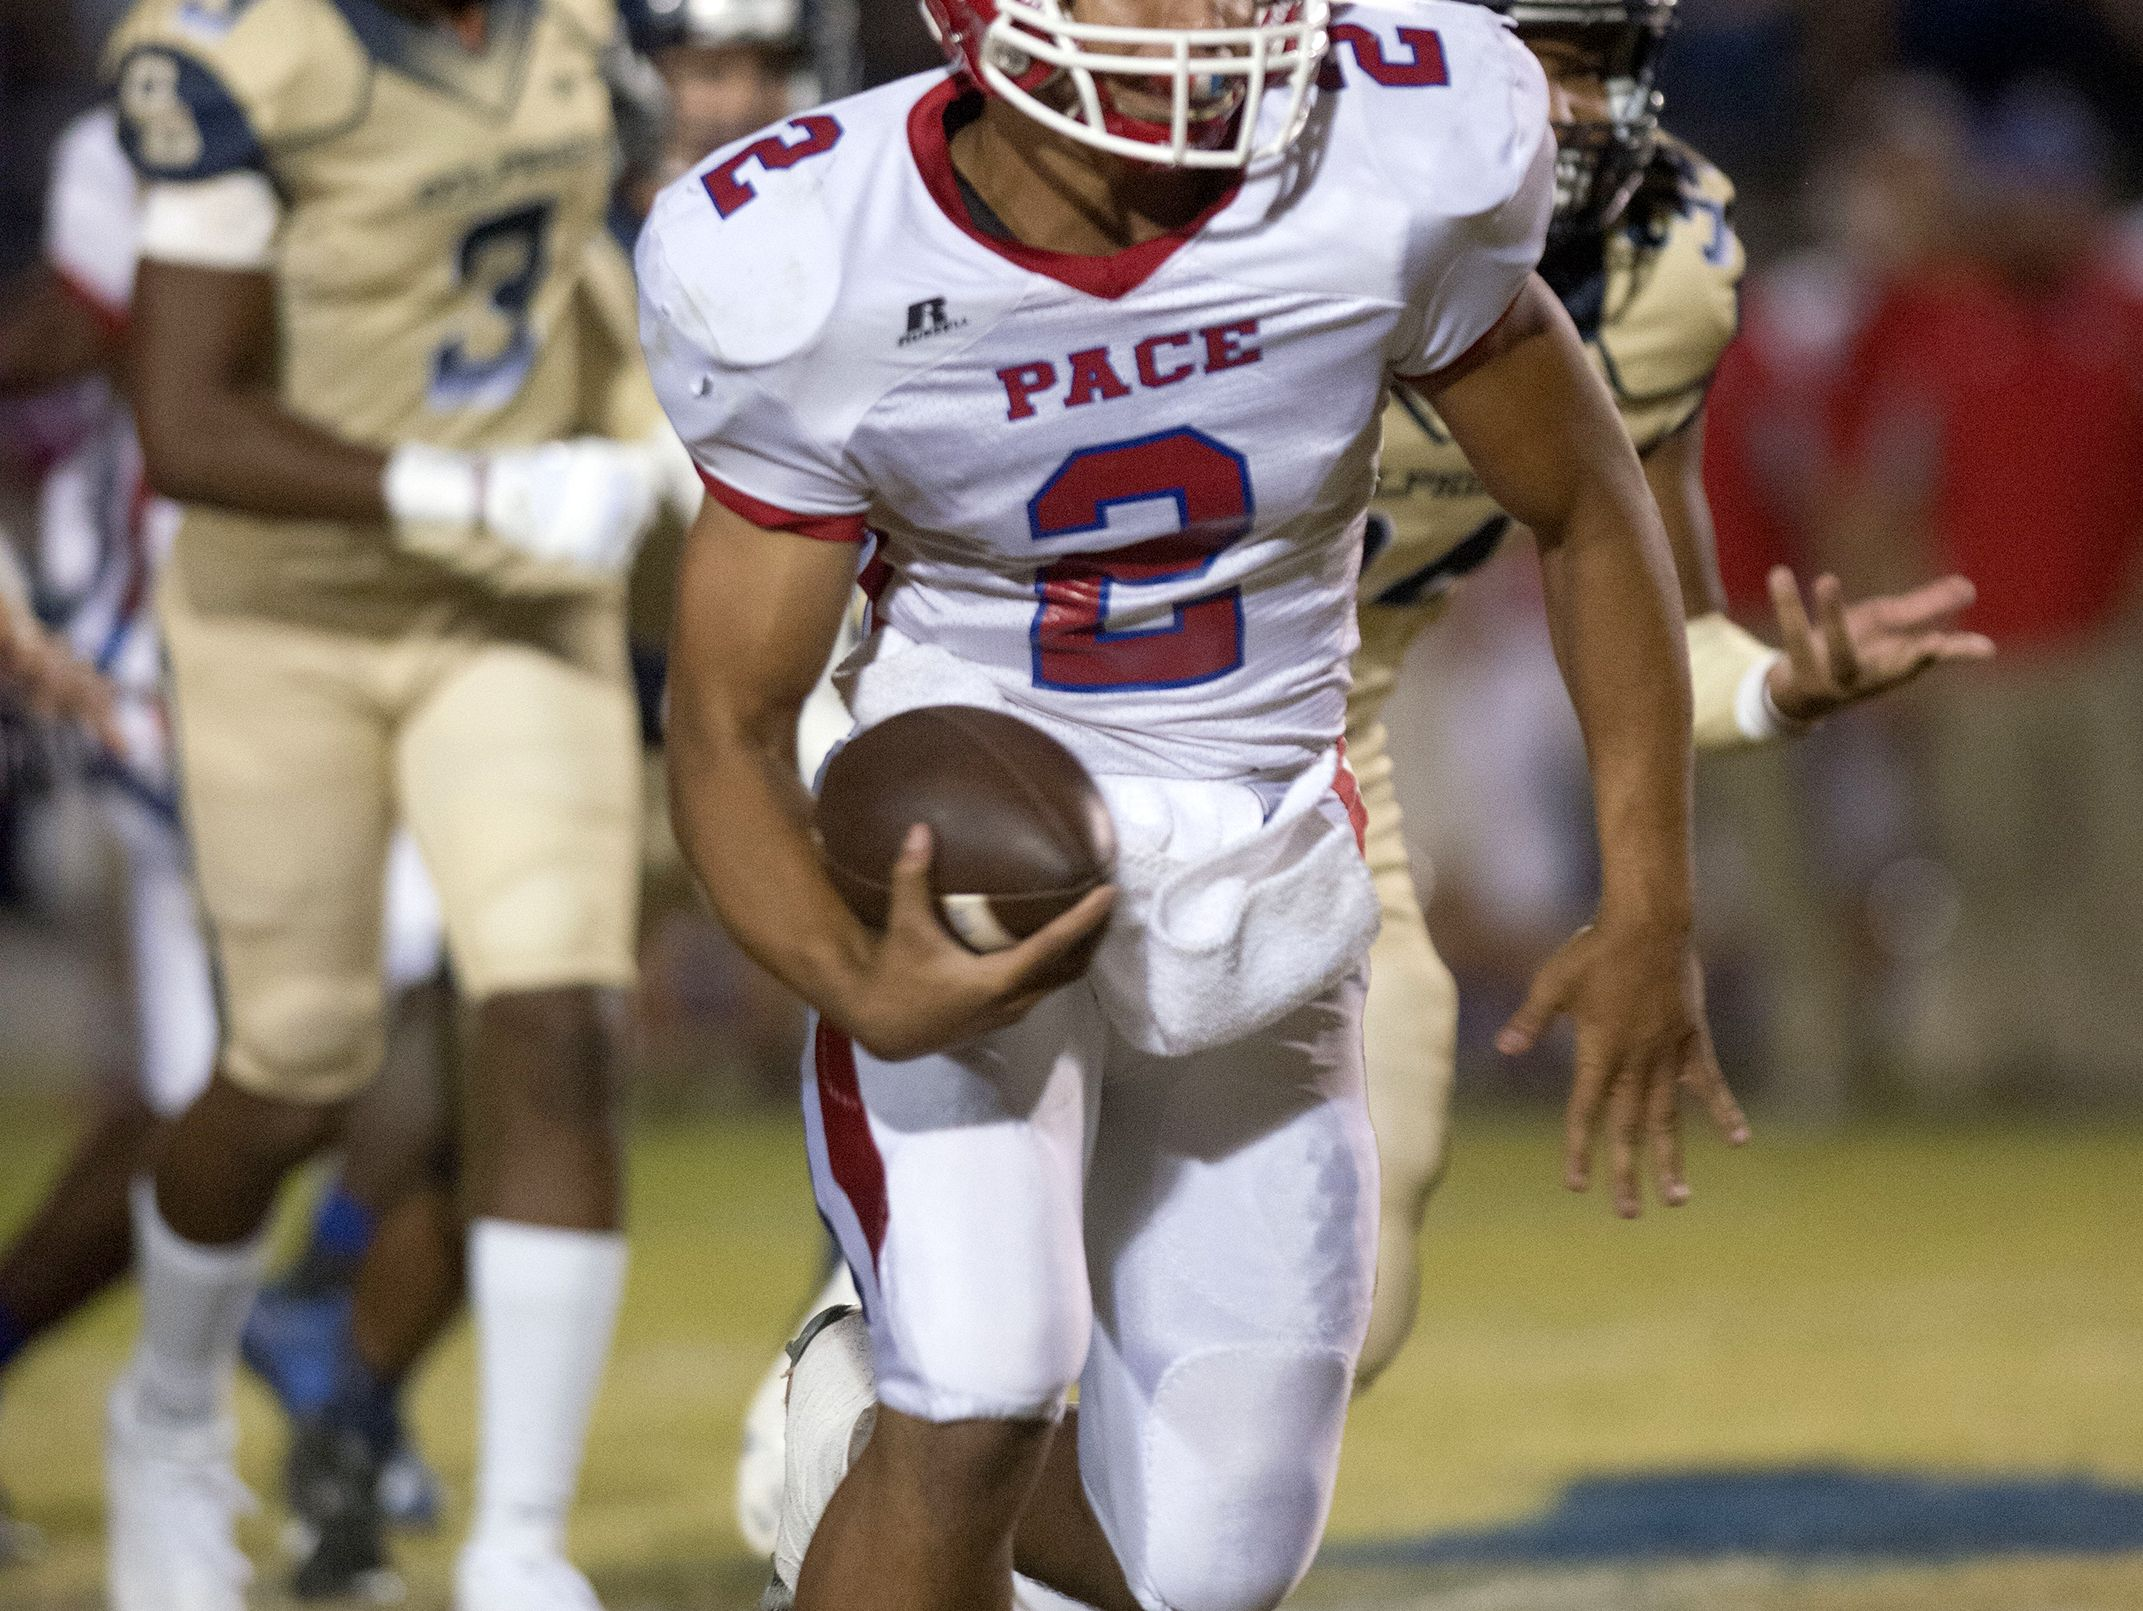 Pace quarterback, Damean Bivins, (No. 2) looks for a hole in the line of scrimmage after being forced out of the pocket by the Gulf Breeze defense during Friday night's District-2 6A game.